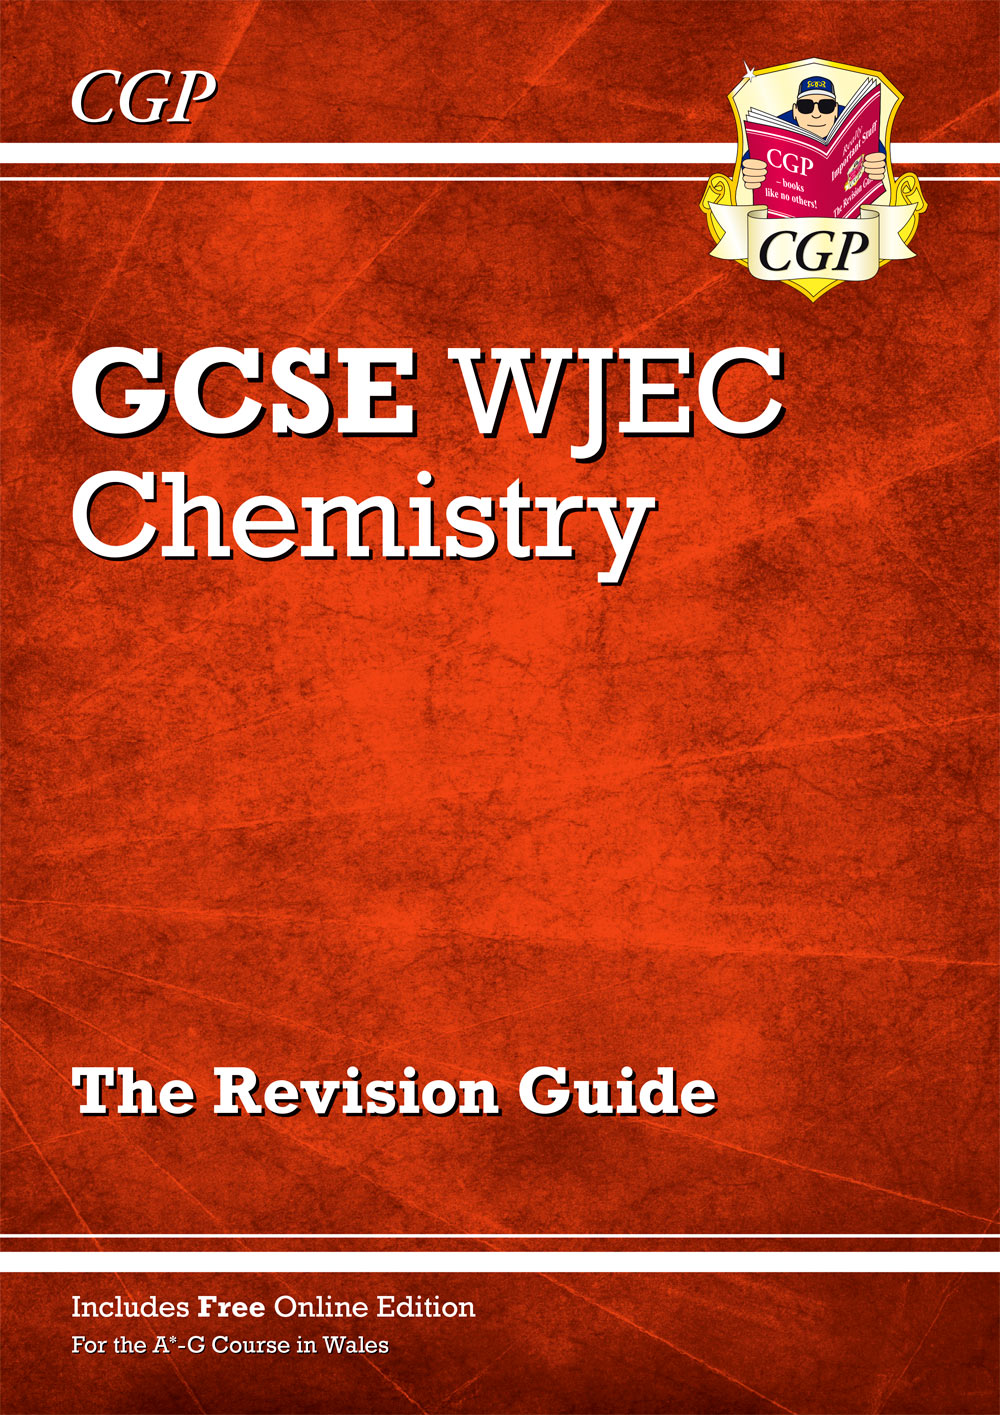 CWR41 - New WJEC GCSE Chemistry Revision Guide (with Online Edition)